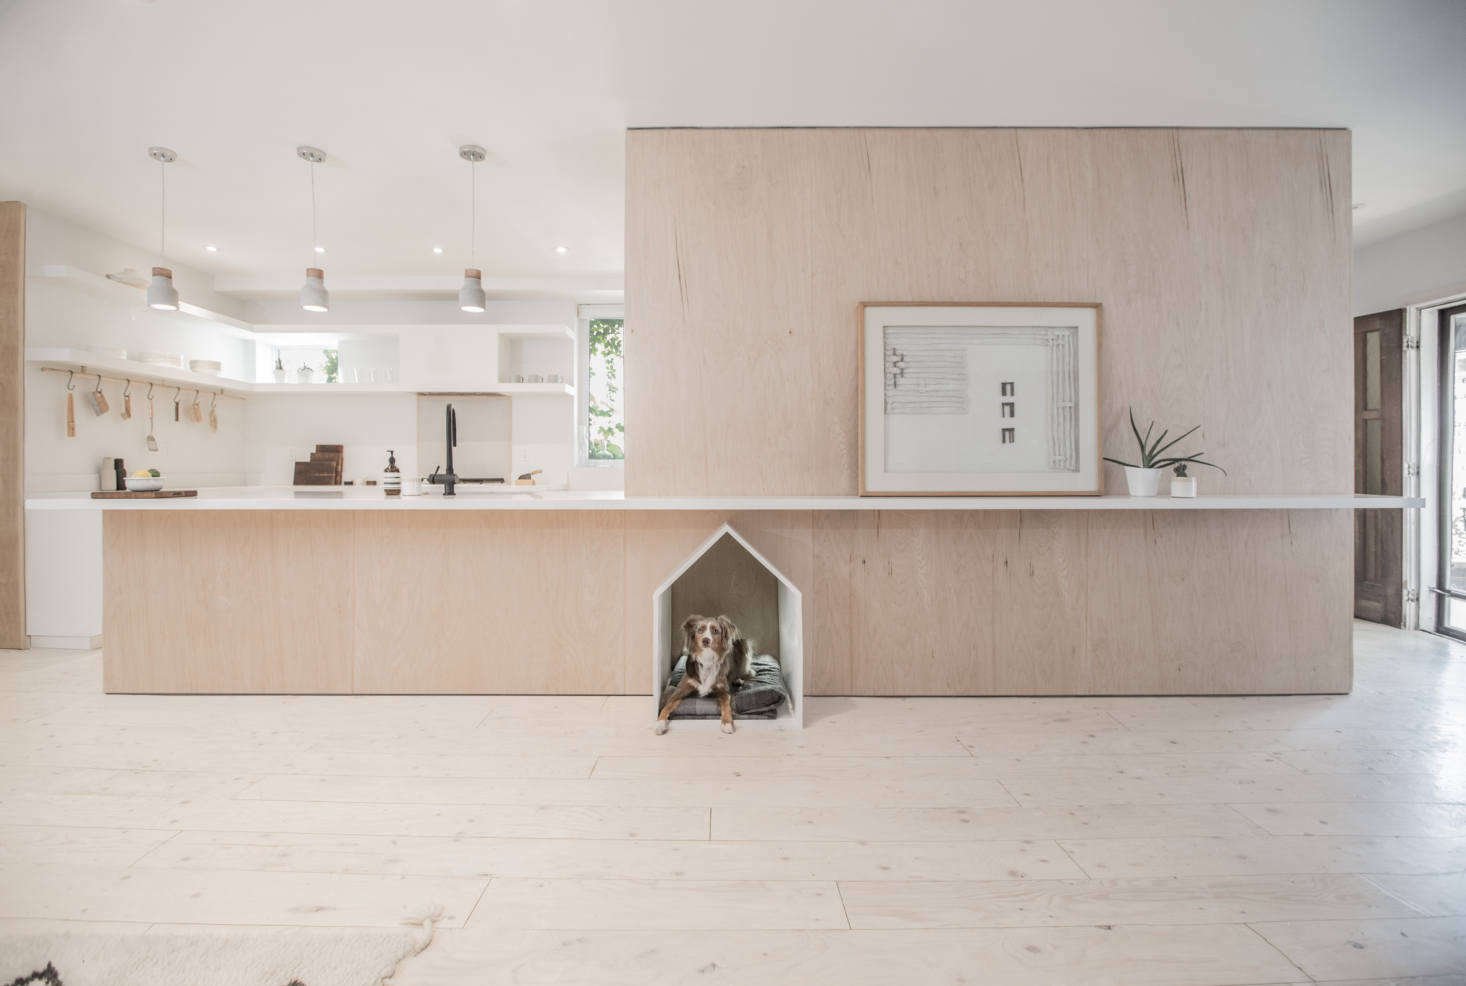 """""""Rather than imagine a home comprised of rooms within an open plan, we conceived a room revolving around a singular mass,"""" write the architects. """"The mass provides the aesthetic grounding for the project while also containing all of its support functions in a clean plywood wrapper."""""""